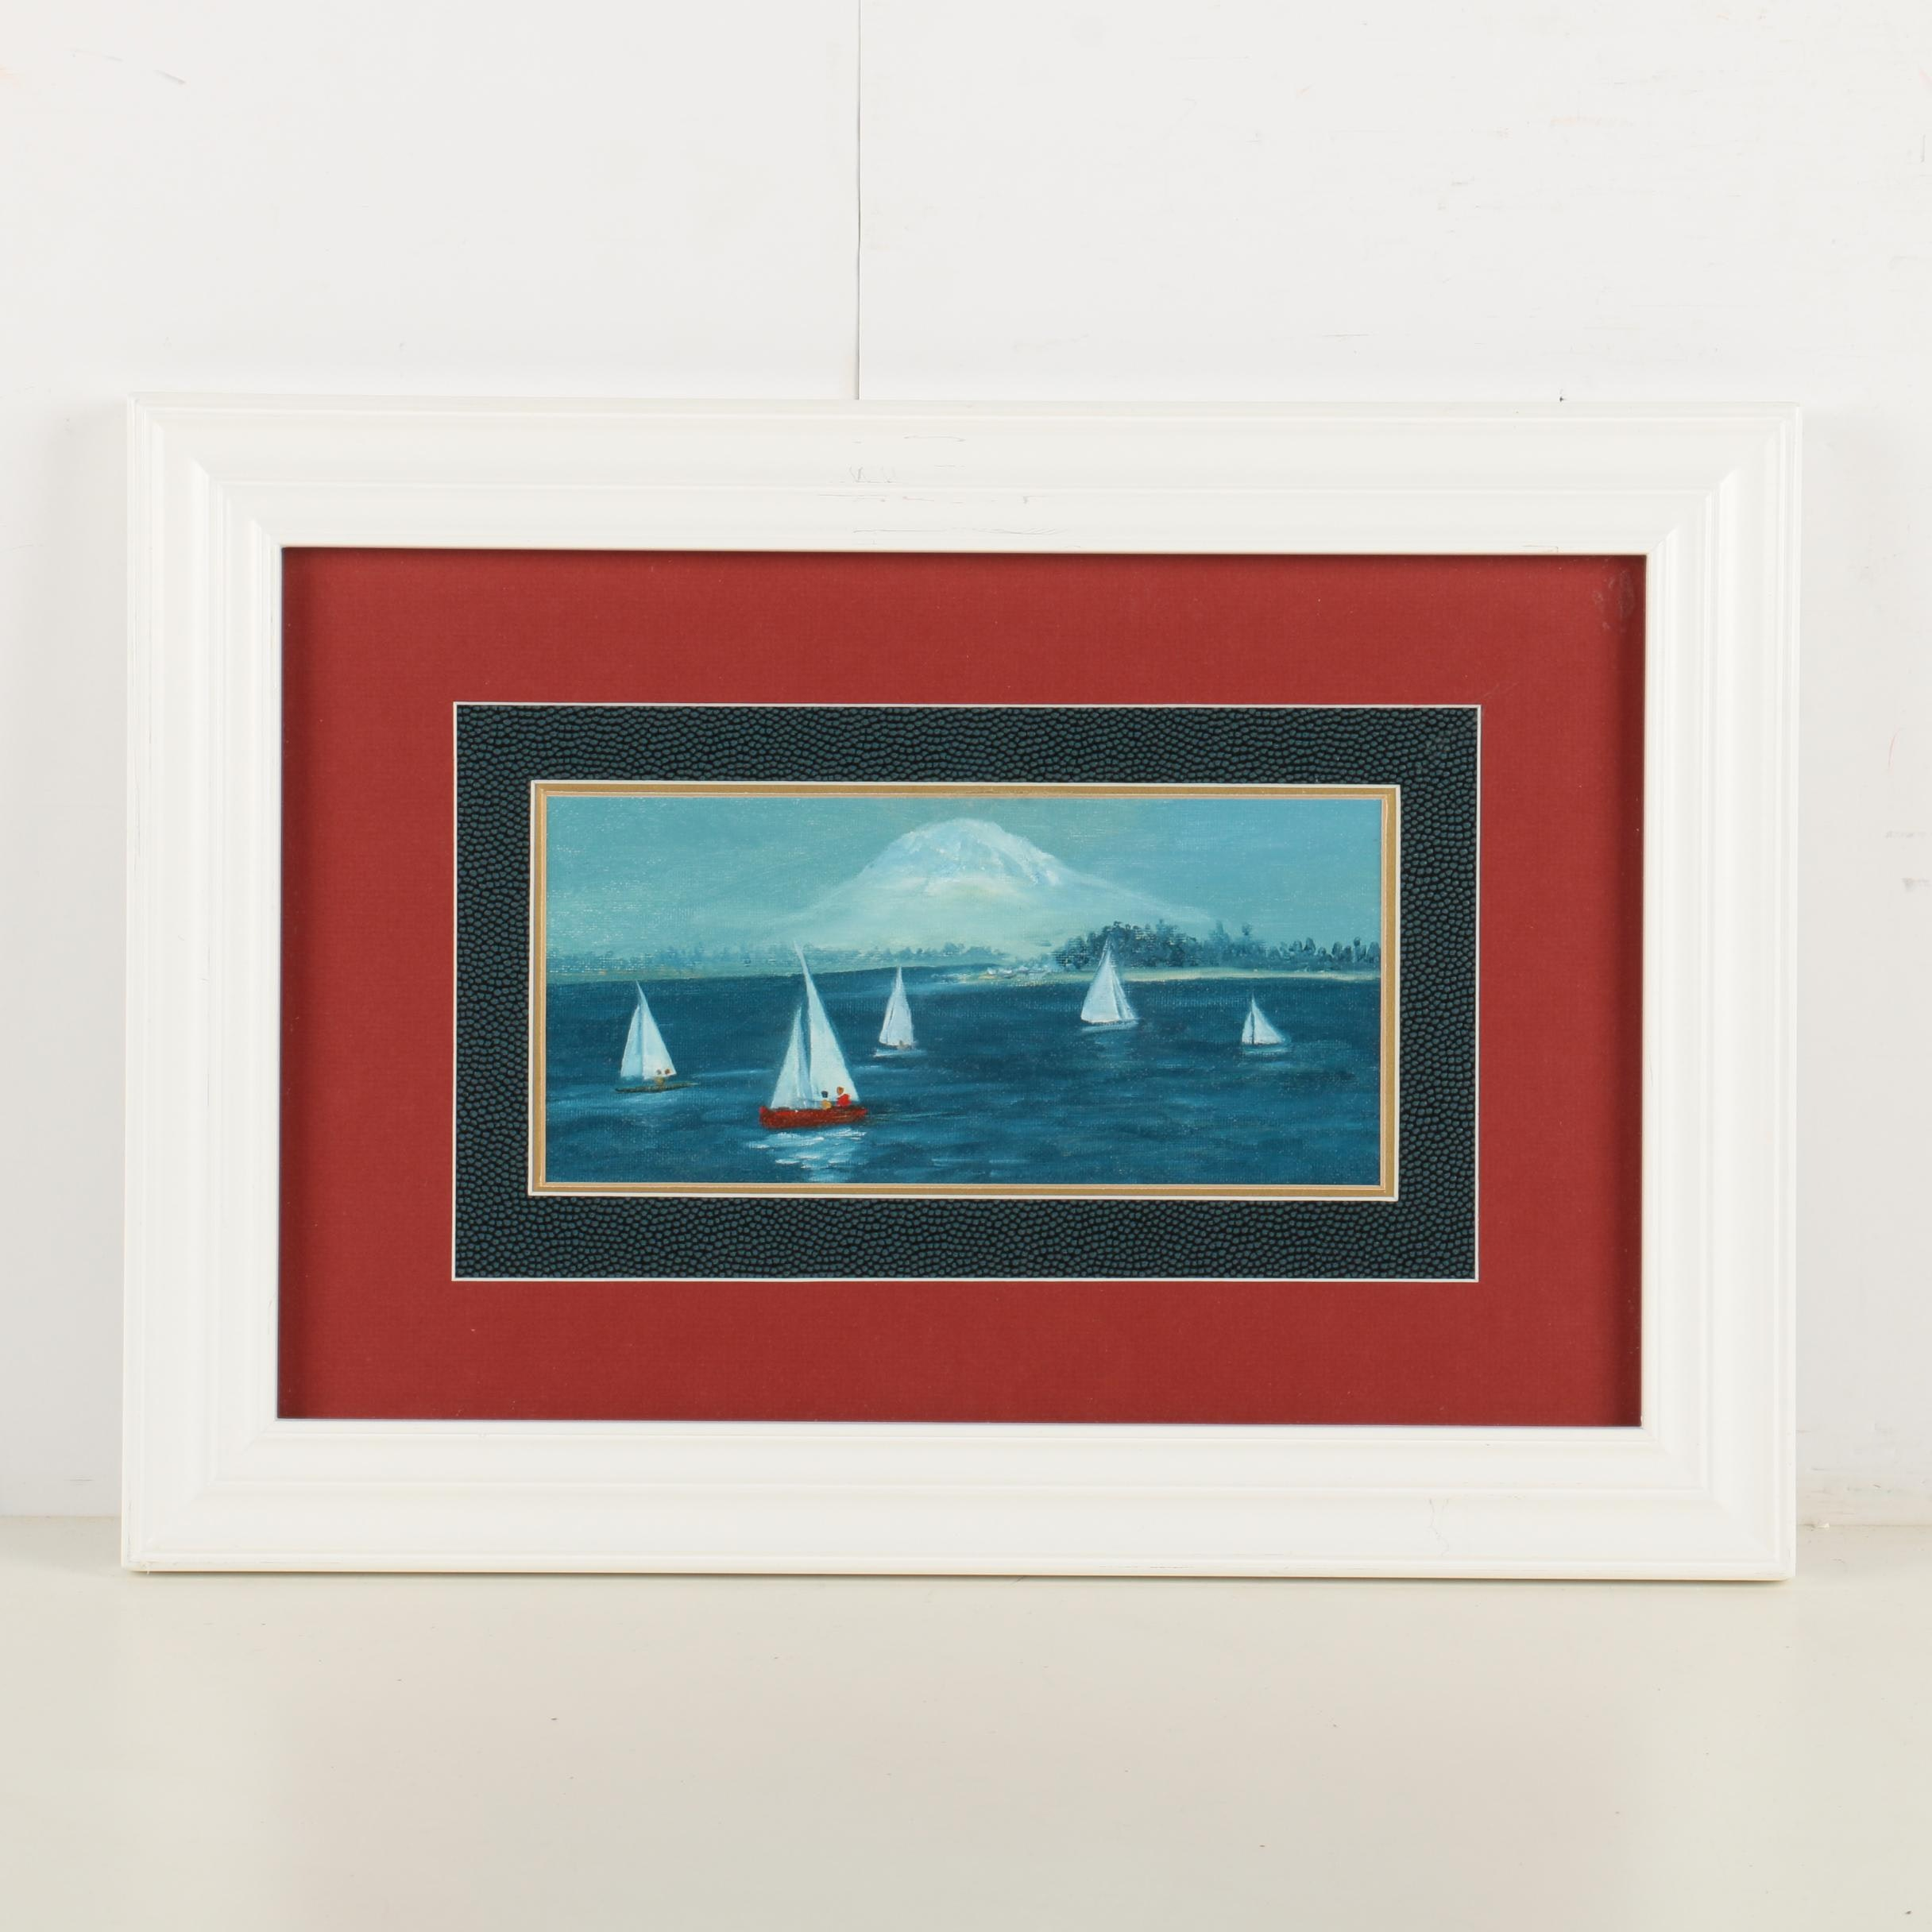 Acrylic Painting on Canvas Board of Sailboats